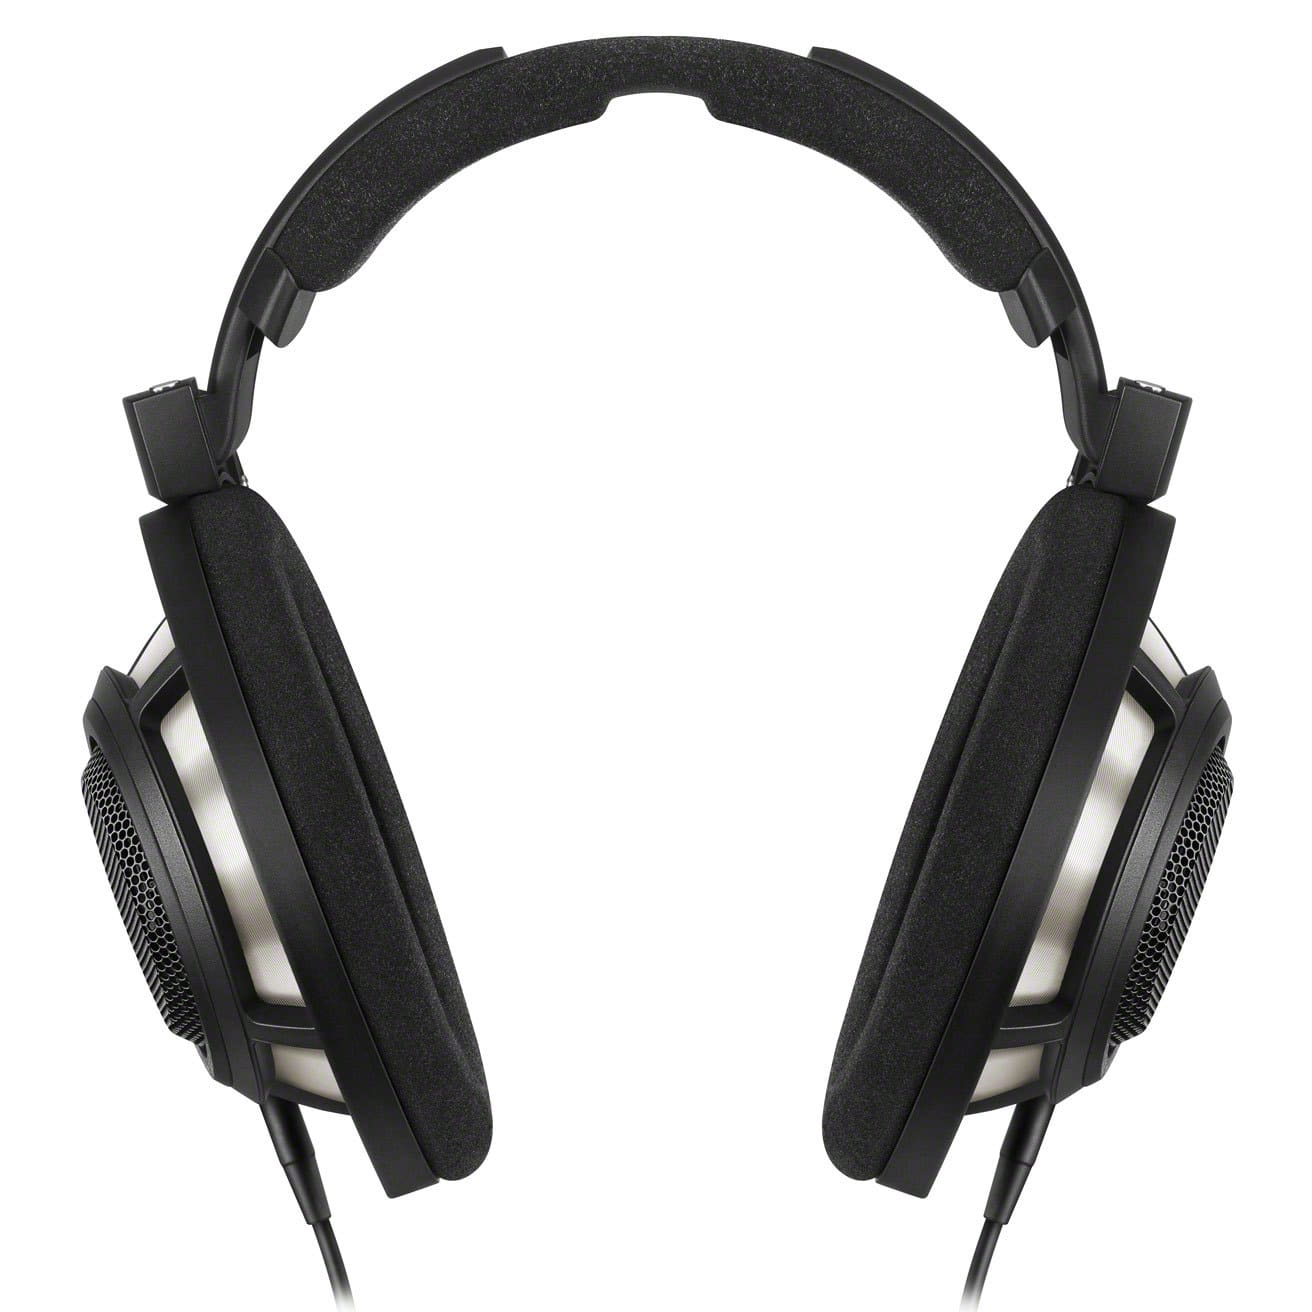 product_detail_x2_desktop_hd_800_black-03-sennheiser